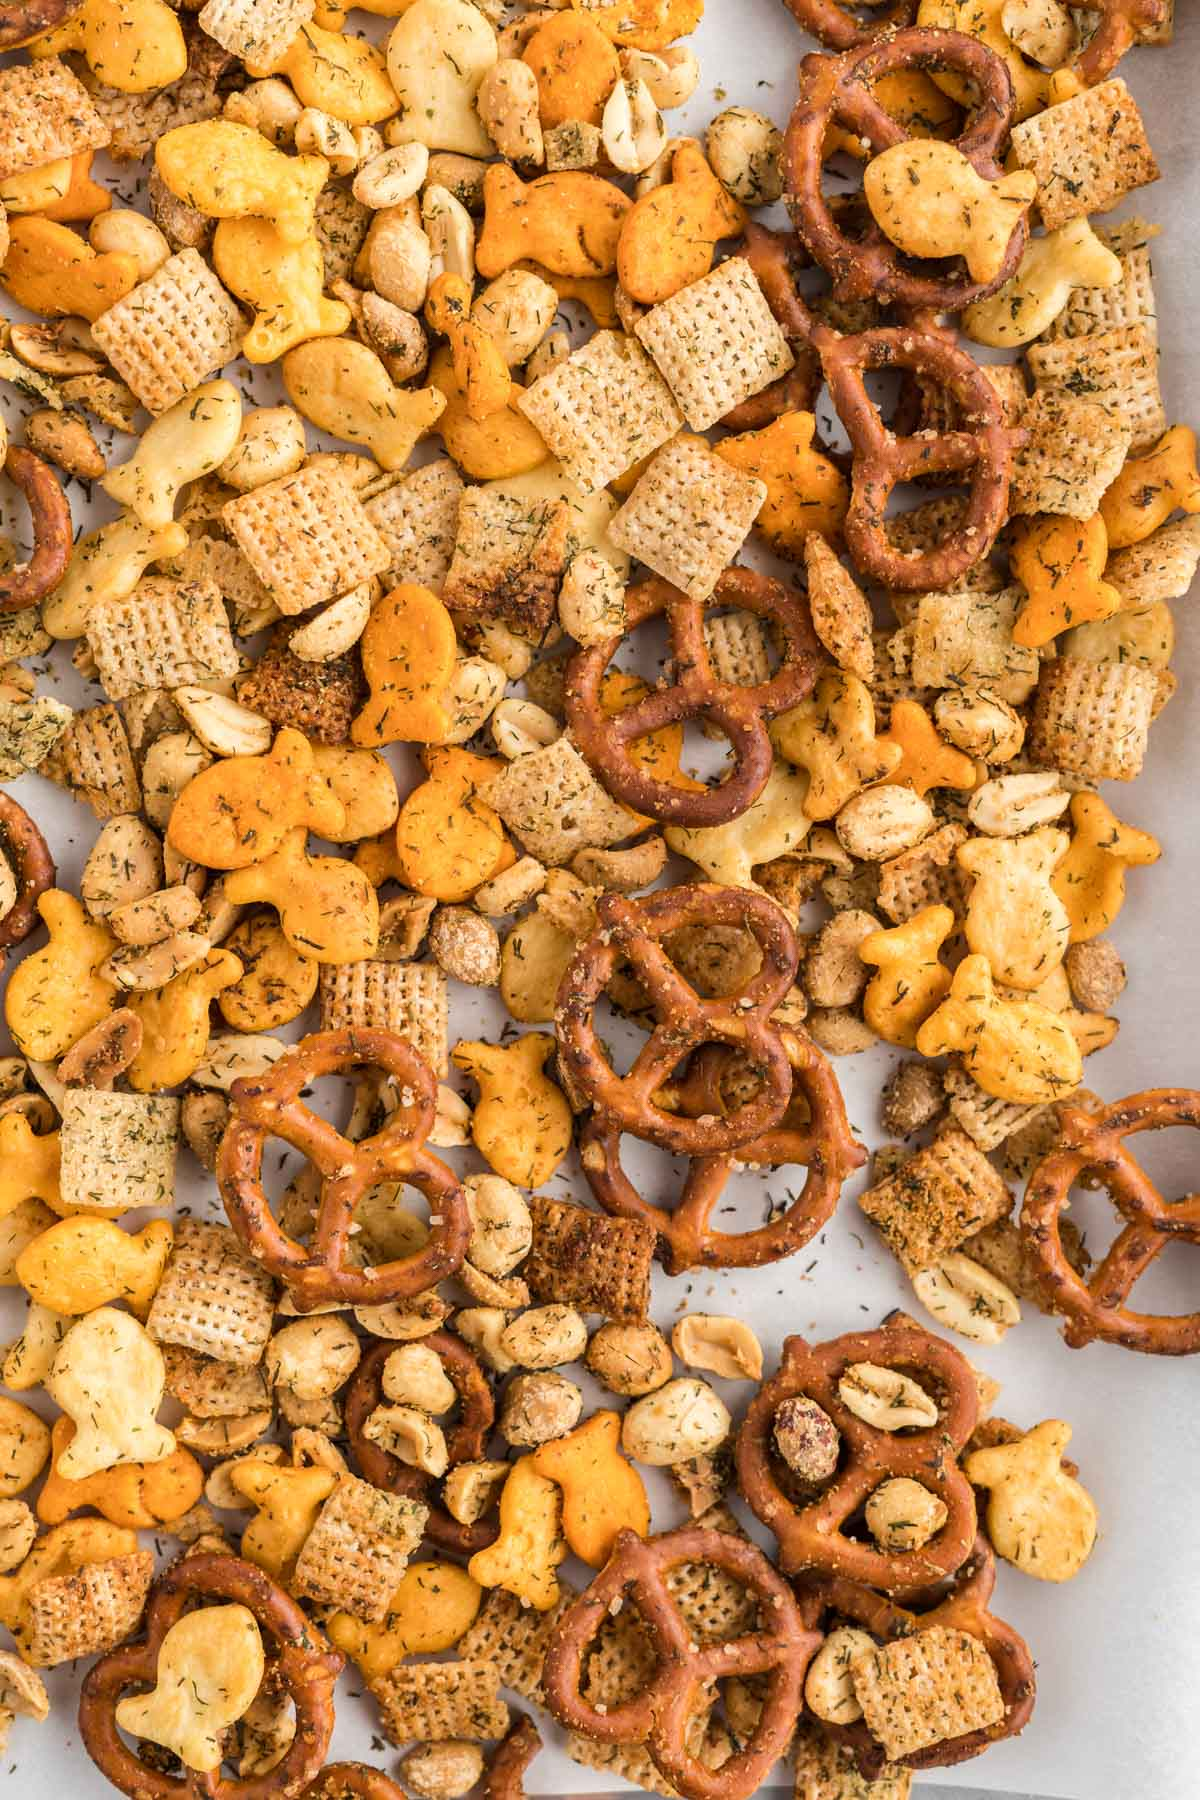 Snack mix of pretzels, goldfish crackers, rice Chex and peanuts on a baking sheet.